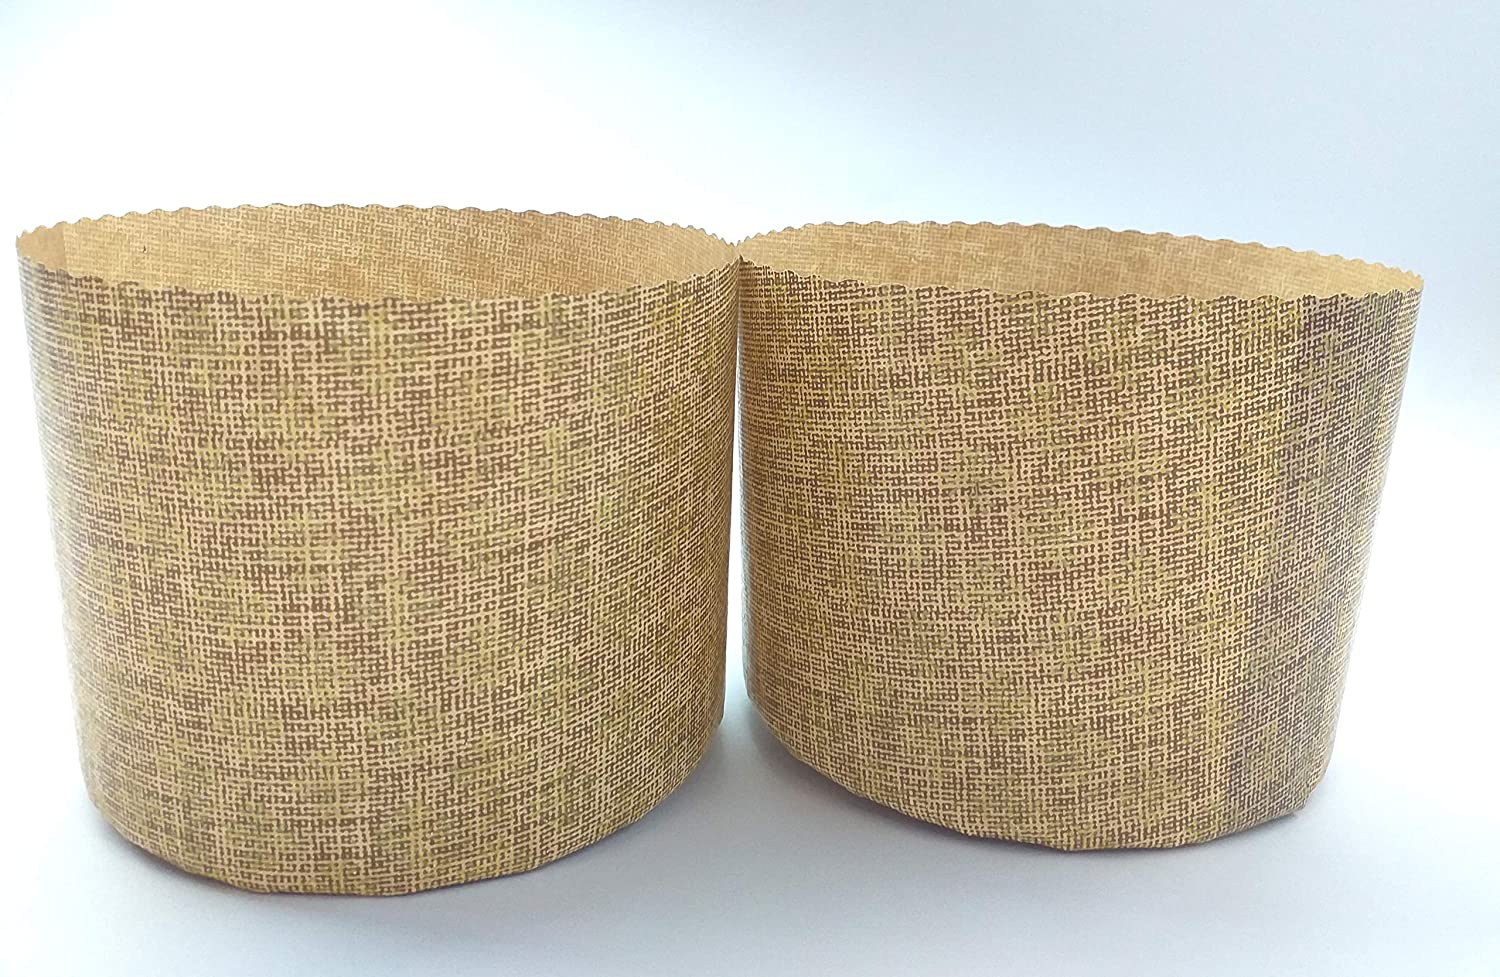 Pack of 25 by SHSH trade group W 3.55 x H 3.55 Inches Panettone Paper Molds Round Non Stick Panettone Mold Baking Cups